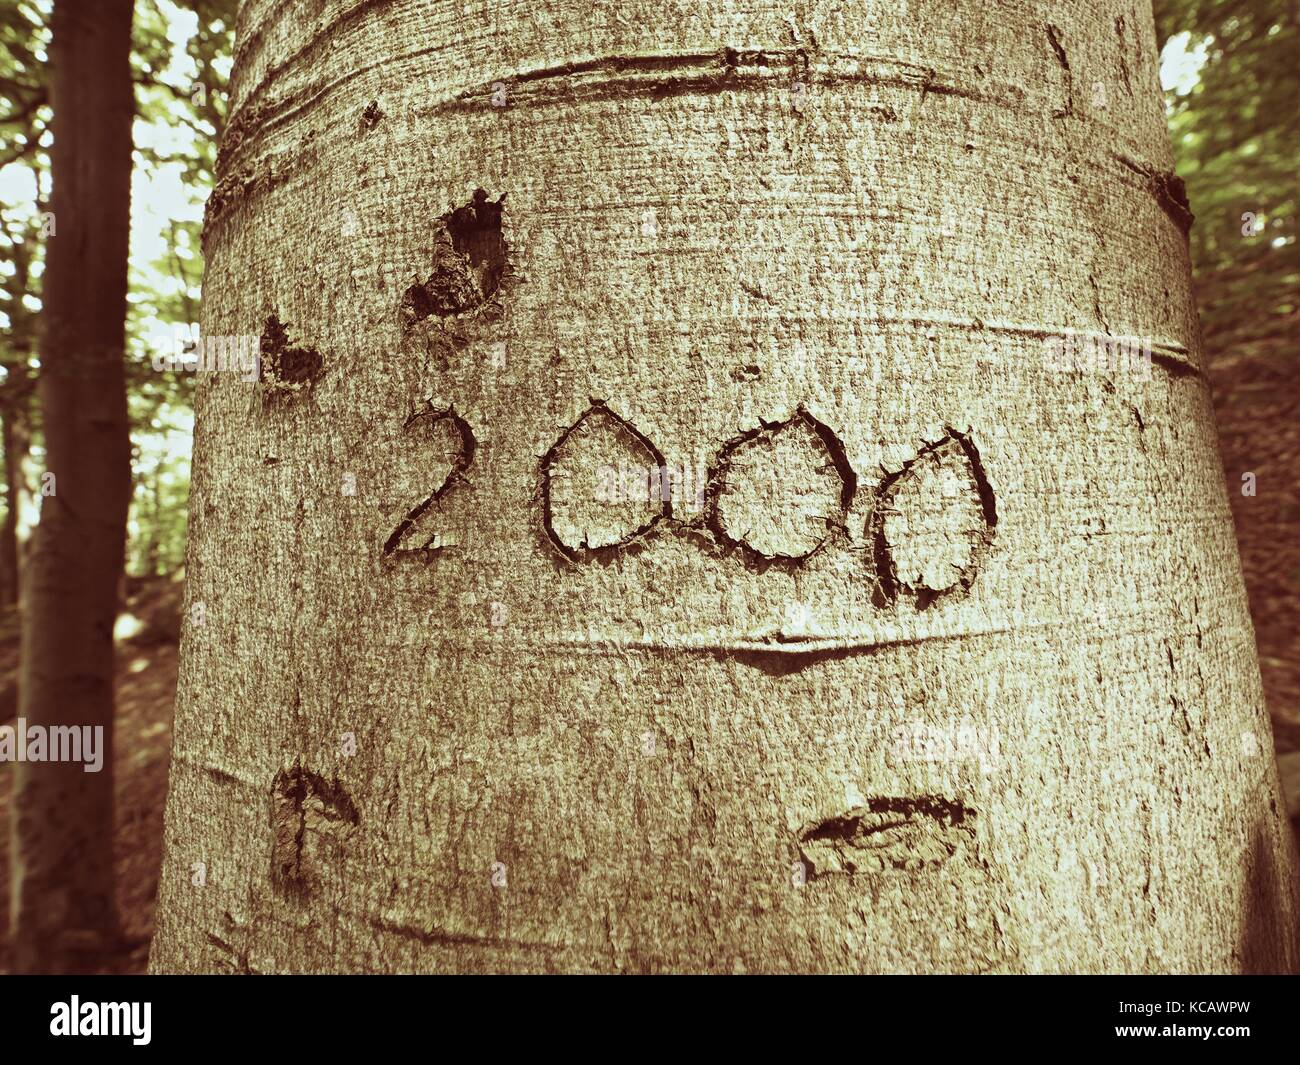 Number two thousand. Knife carving on beech tree bark. Tree vandalism in a forest park - Stock Image